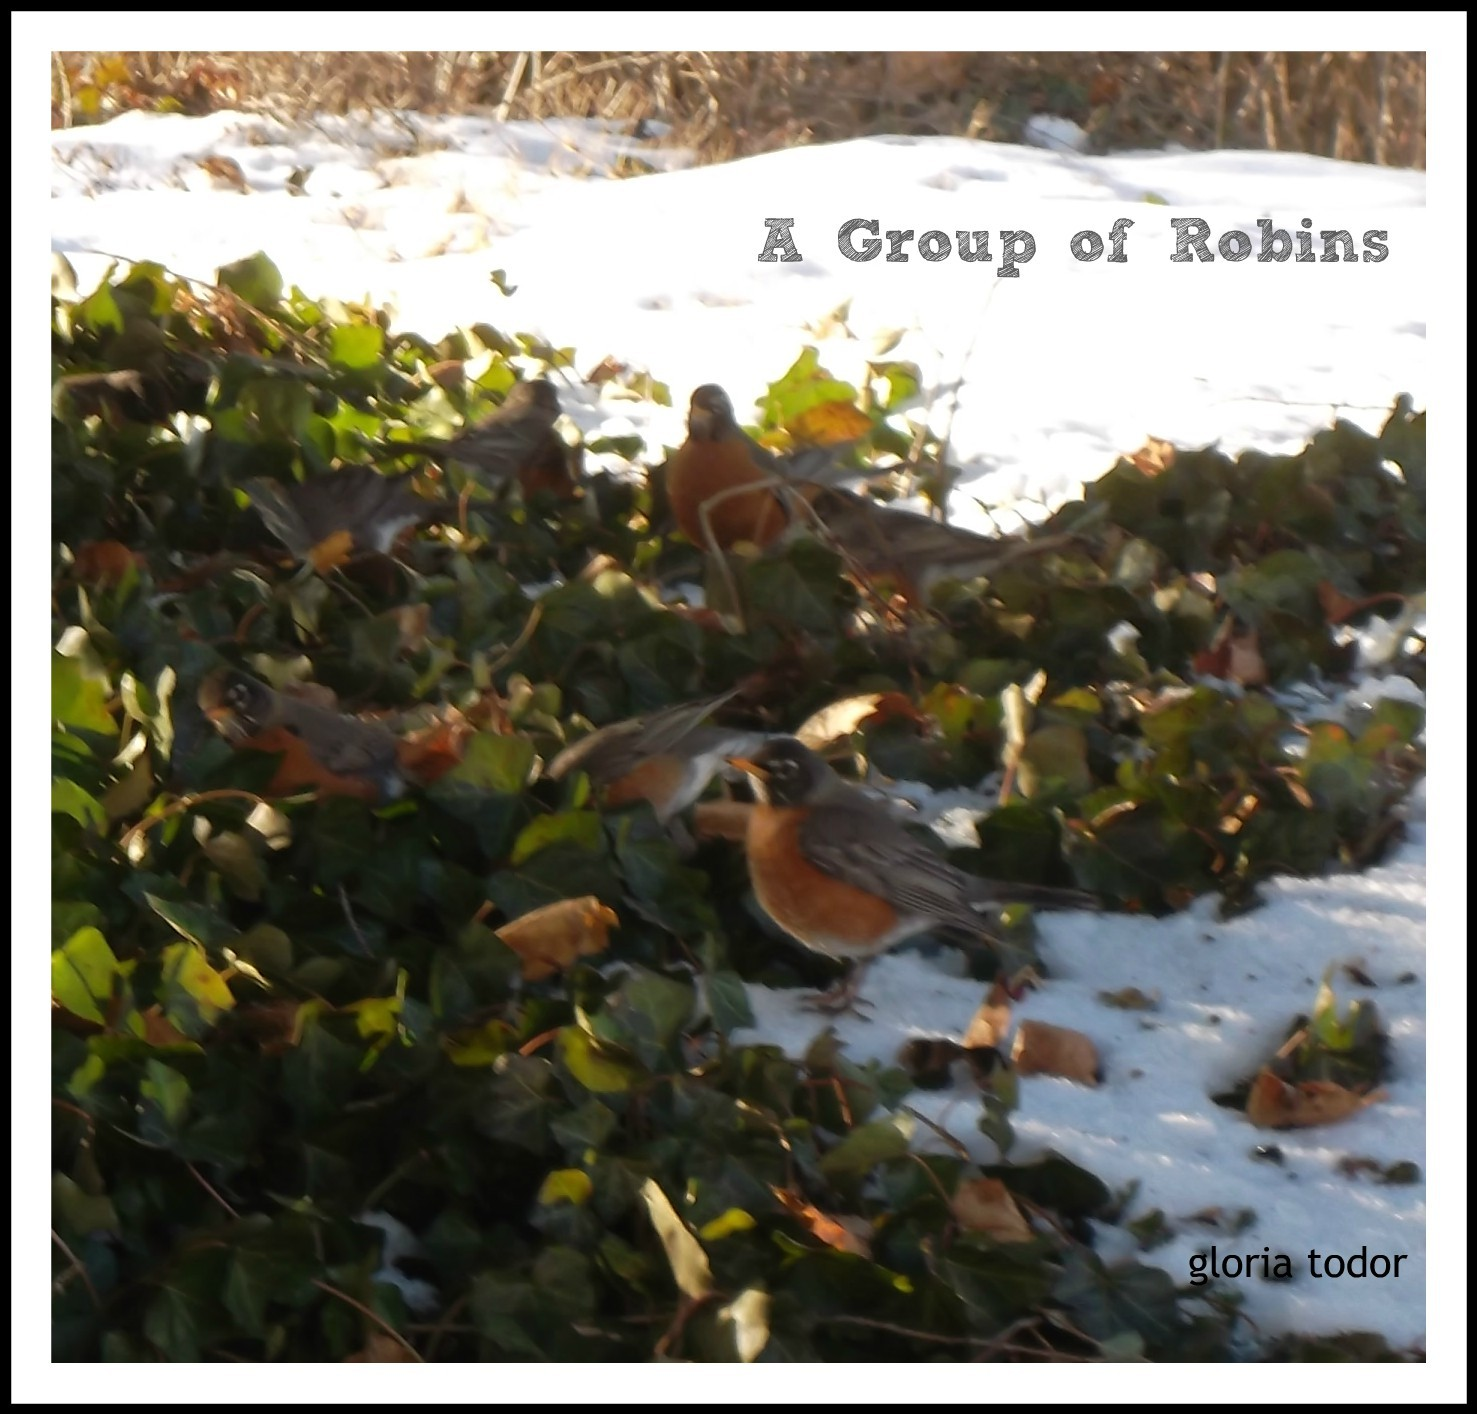 A Group of Robins in Delco